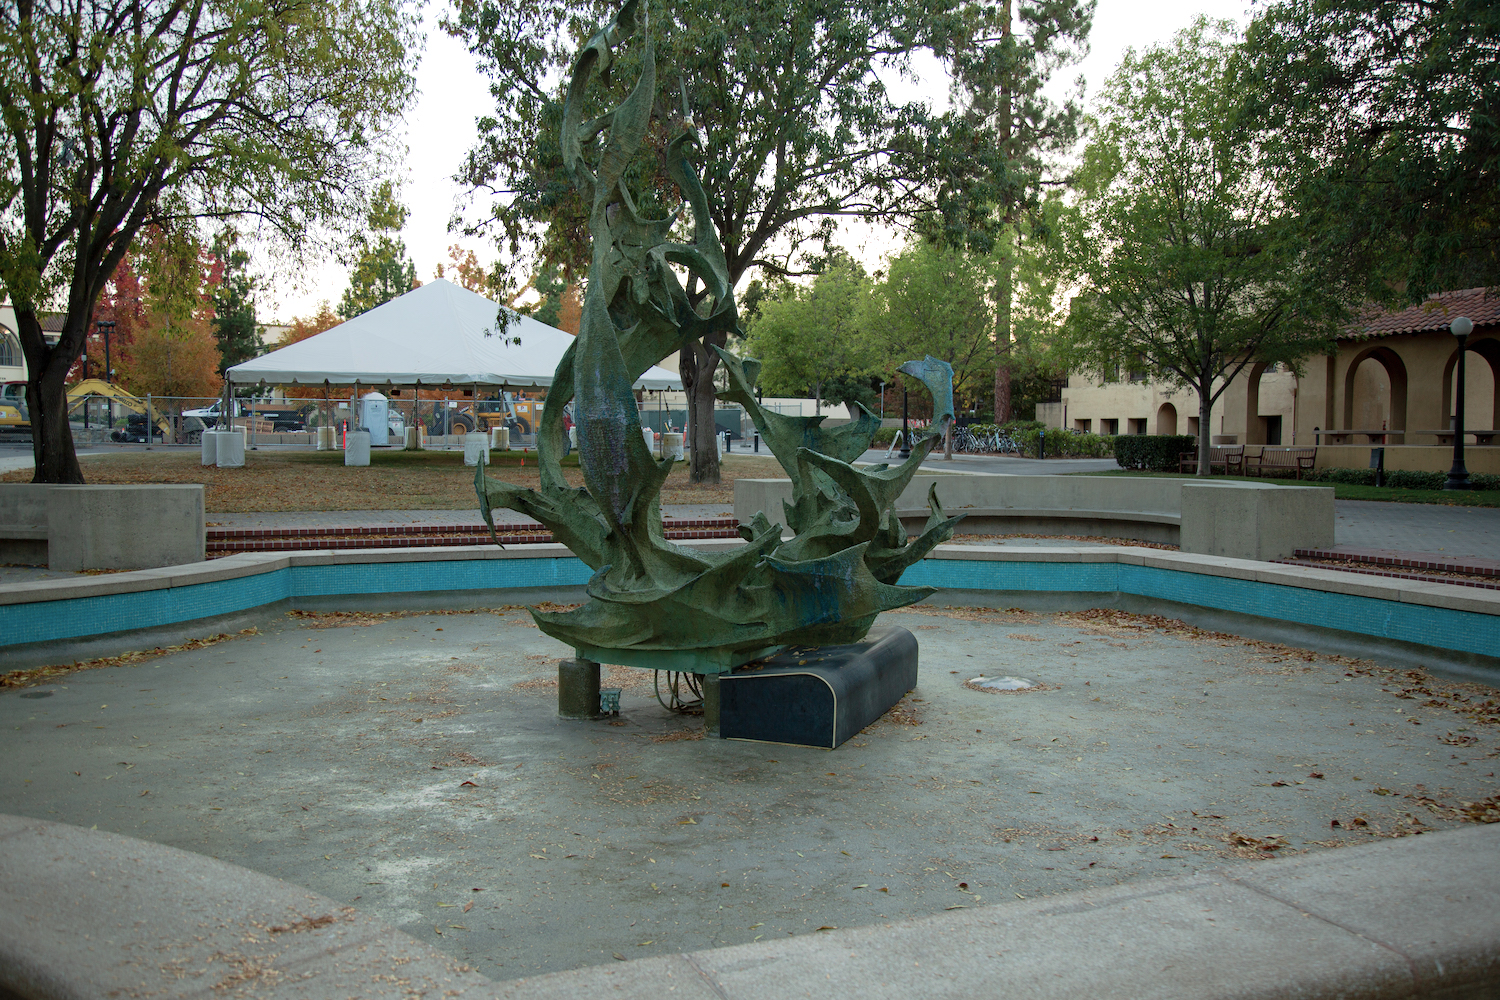 """The Claw, usually filled with water (and sometimes students partaking in """"fountain hopping""""), is empty. Most fountains on campus have been dry since March. (Noah Cortez, Peninsula Press)"""